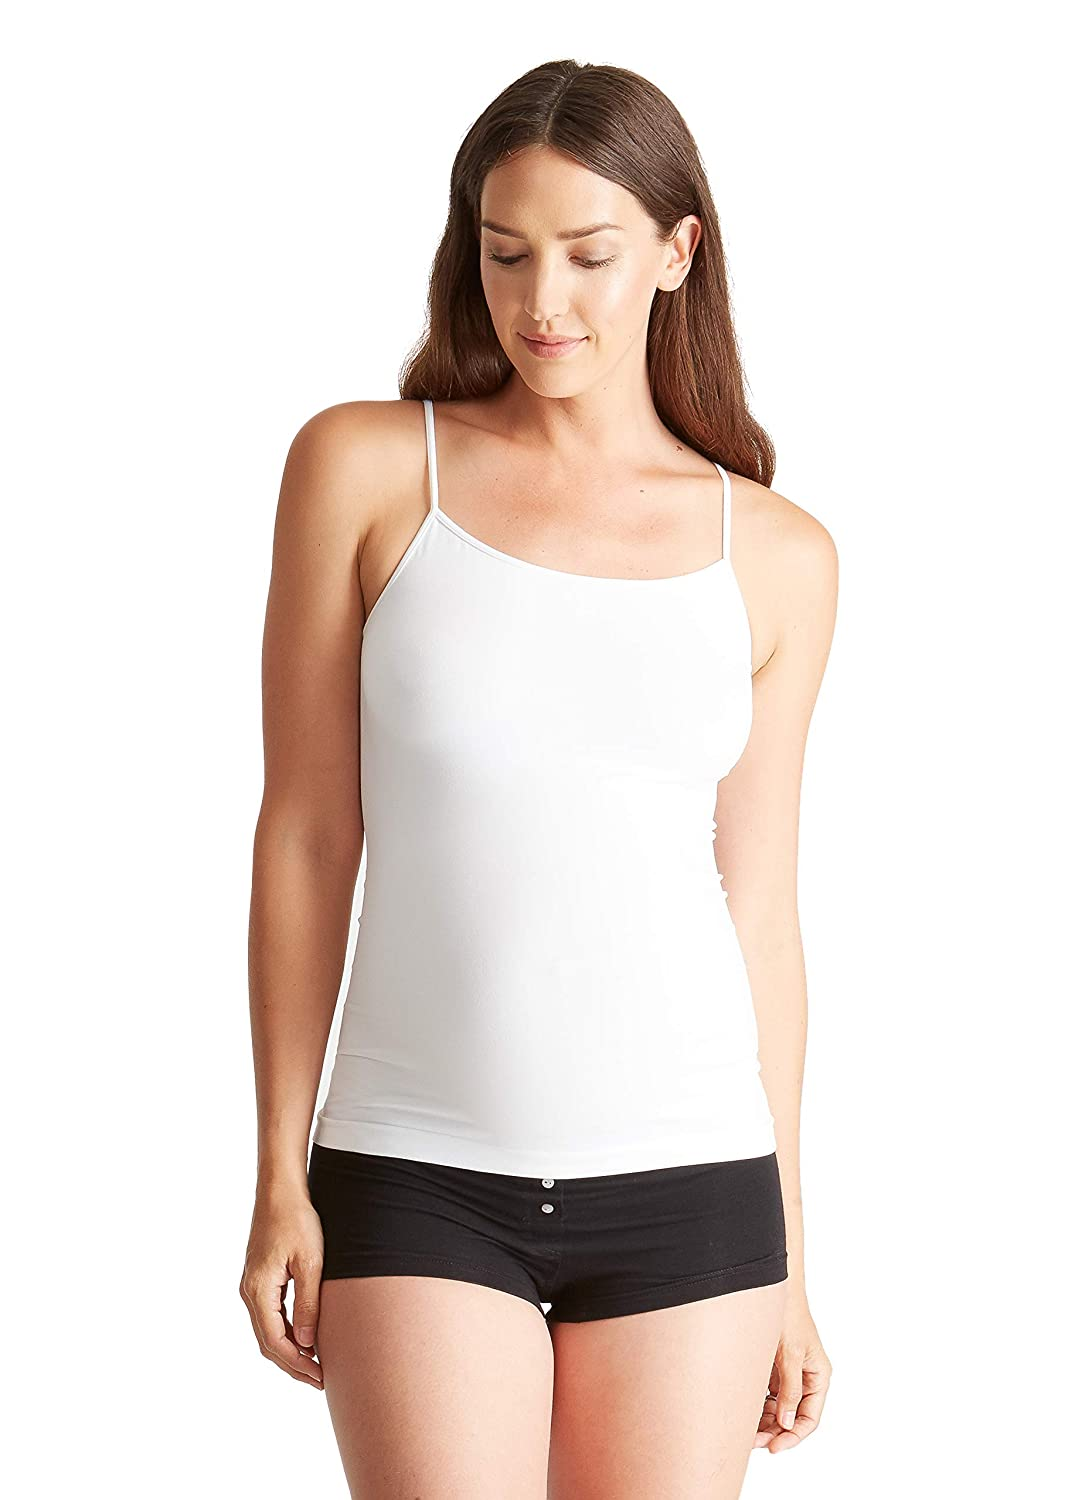 5eed7fd3609a8 Ingrid   Isabel Women s Camisole Tank Top Everyday Cami Maternity Stretch  Shirt at Amazon Women s Clothing store  Fashion Maternity Tank Top And Cami  Shirts